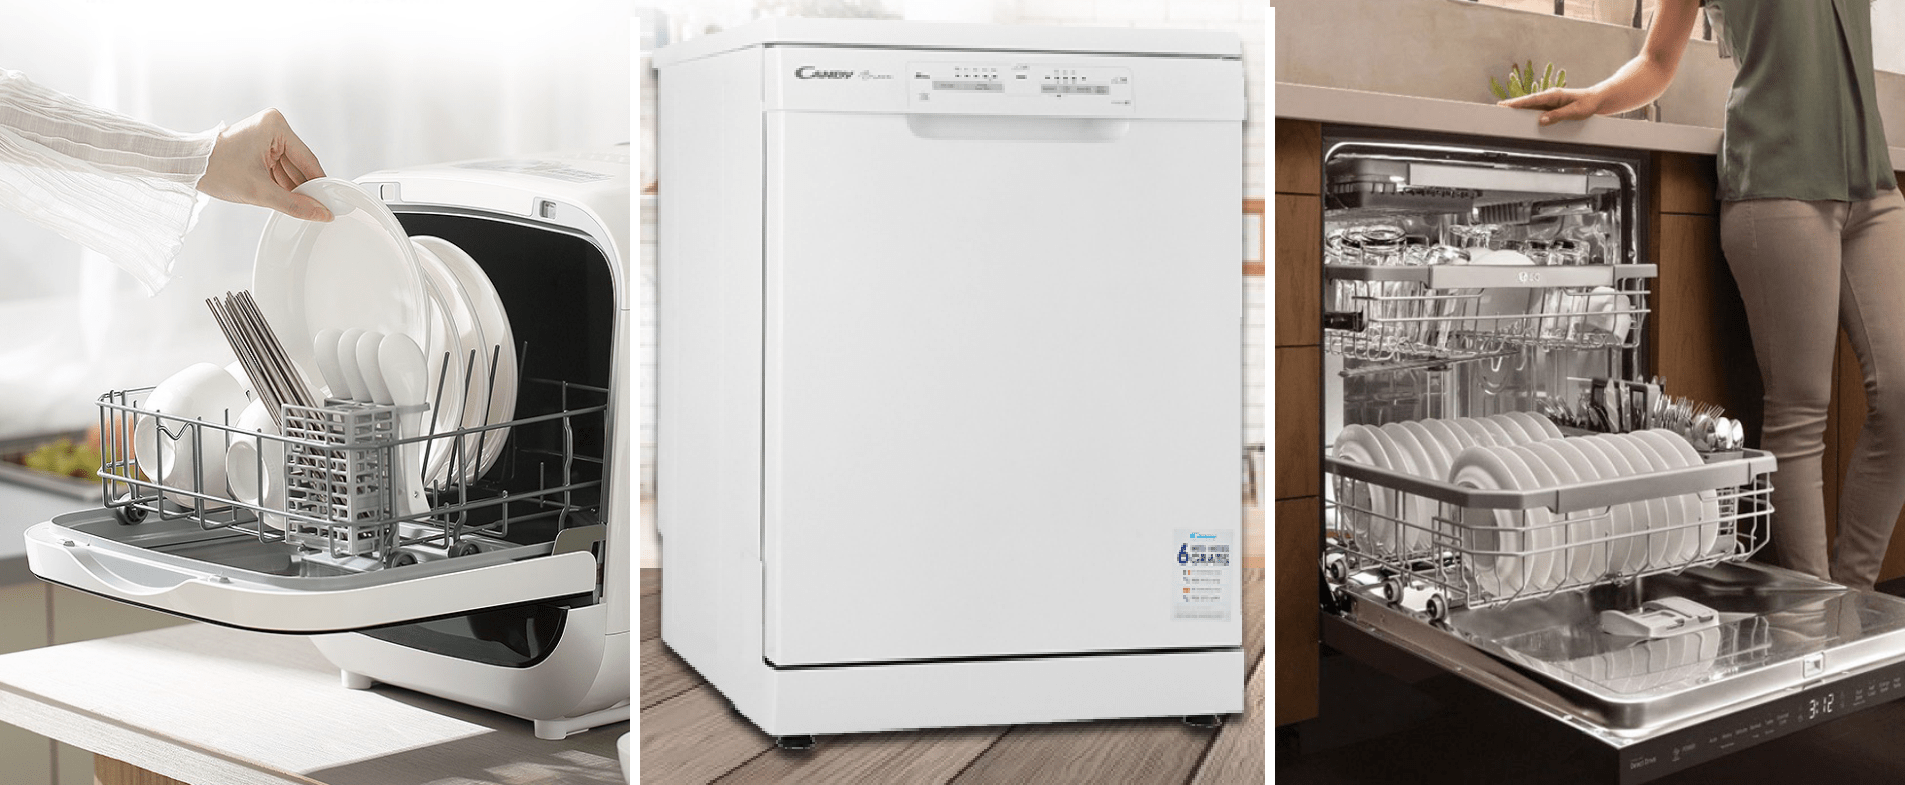 9 Best Affordable Dishwashers In Singapore To Help You Clear Dishes After Dinner Without Scrubbing For Ages